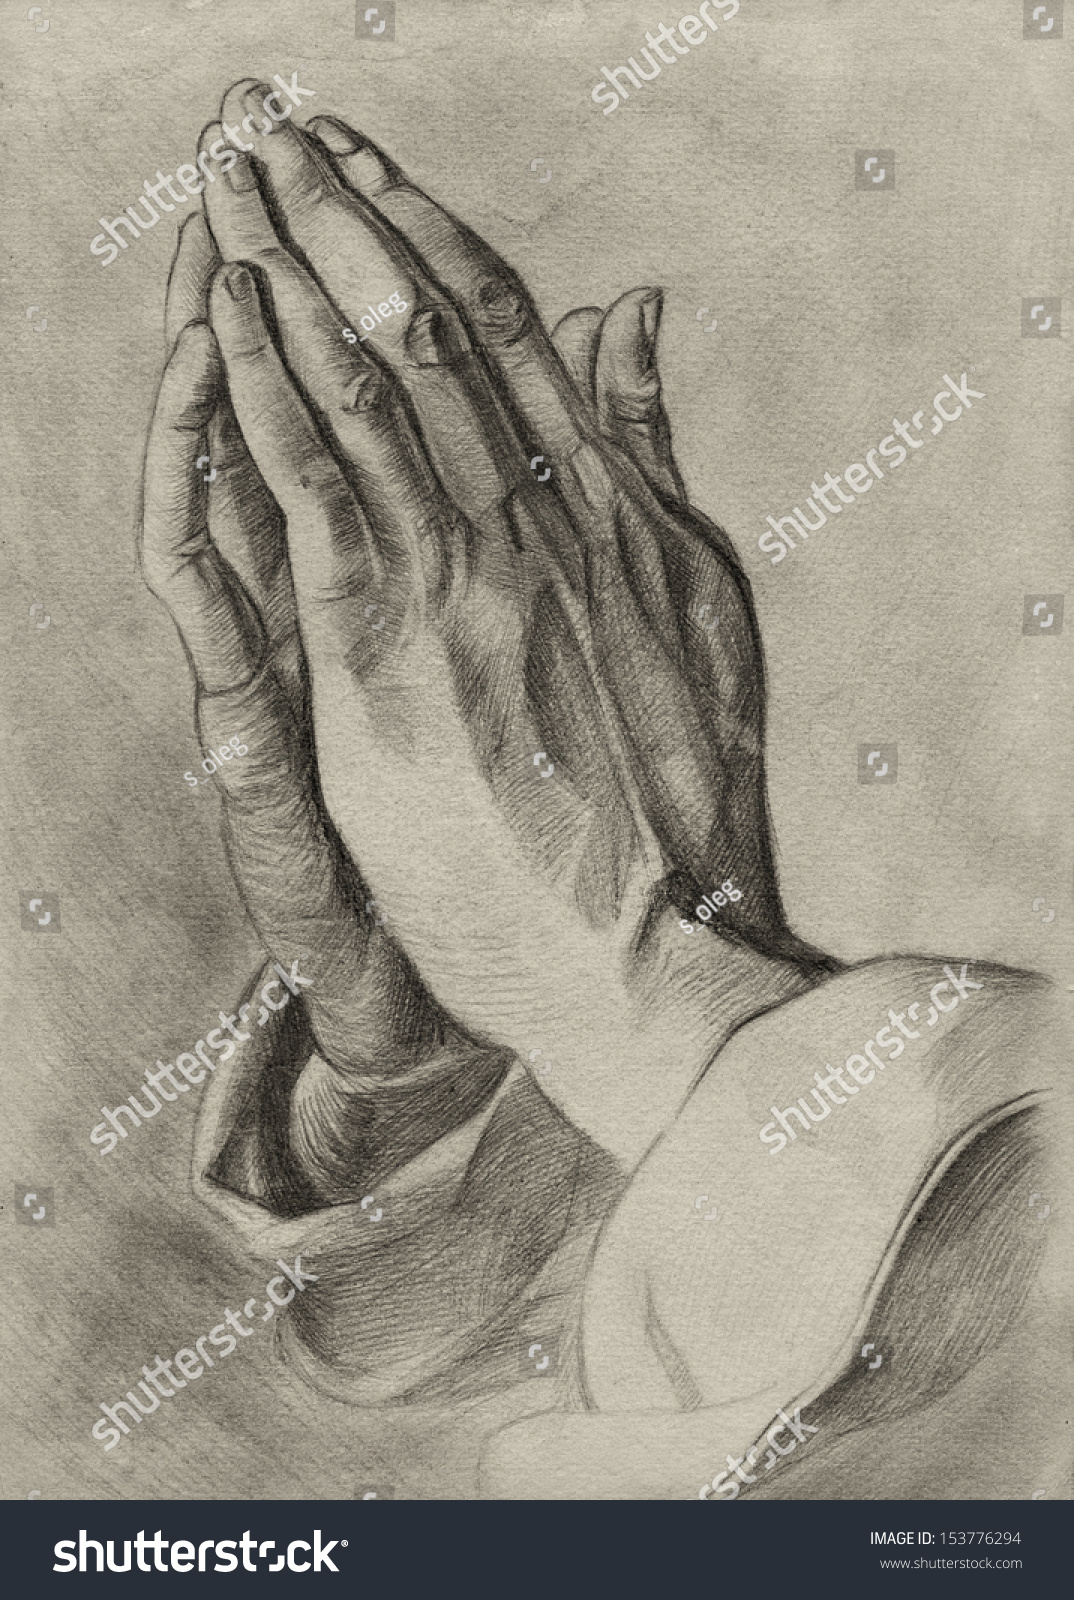 Hands In Pray Pose. Pencil Drawing. Stock Photo 153776294 ...